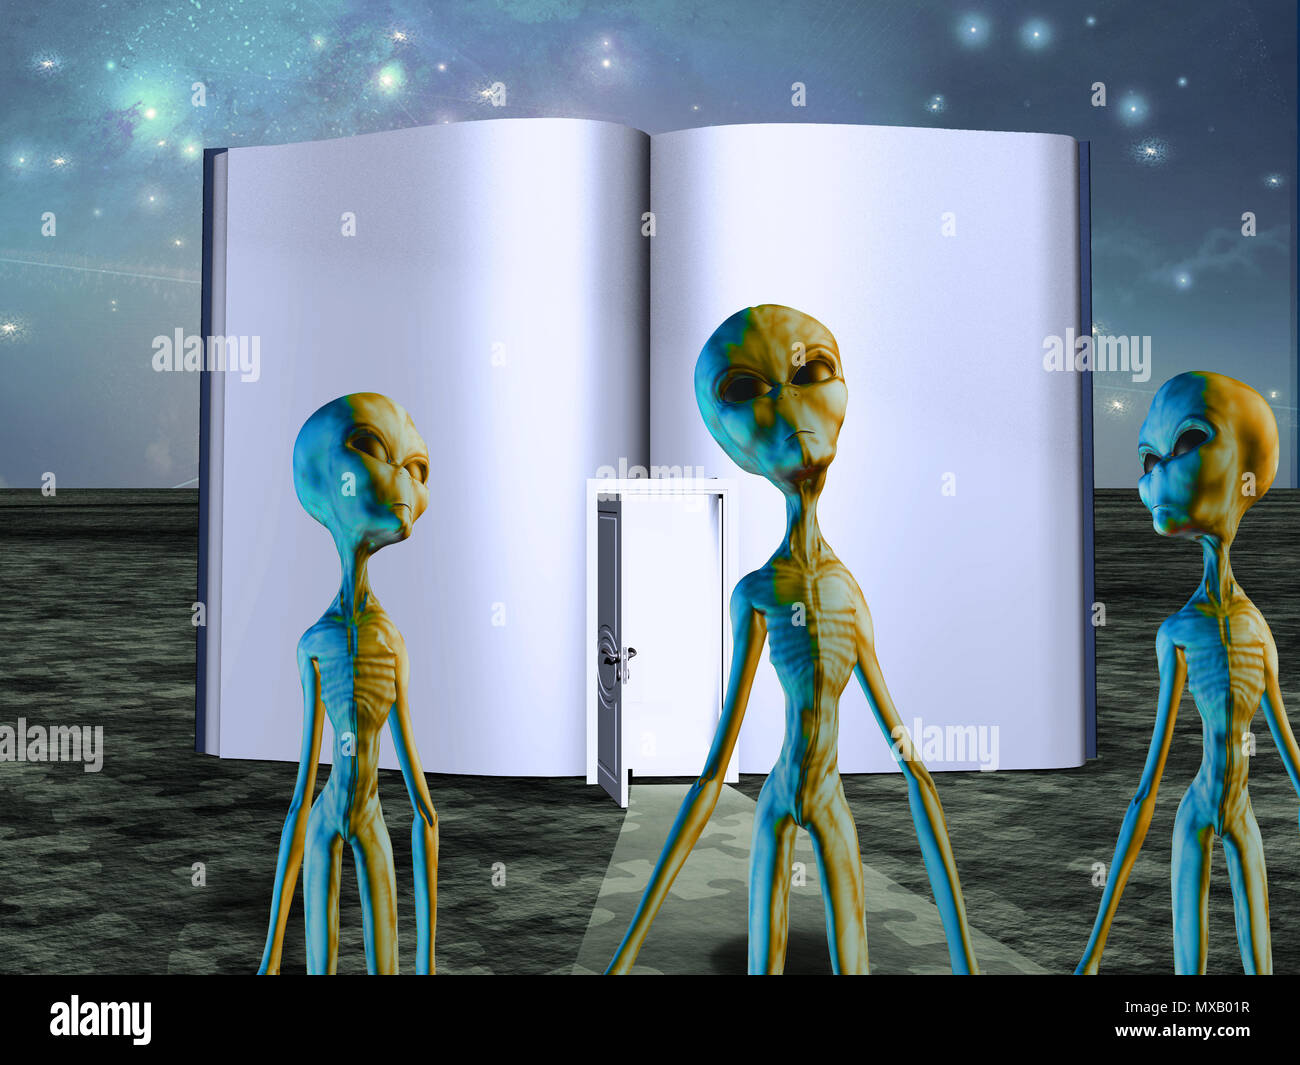 Aliens before opened book with door - Stock Image